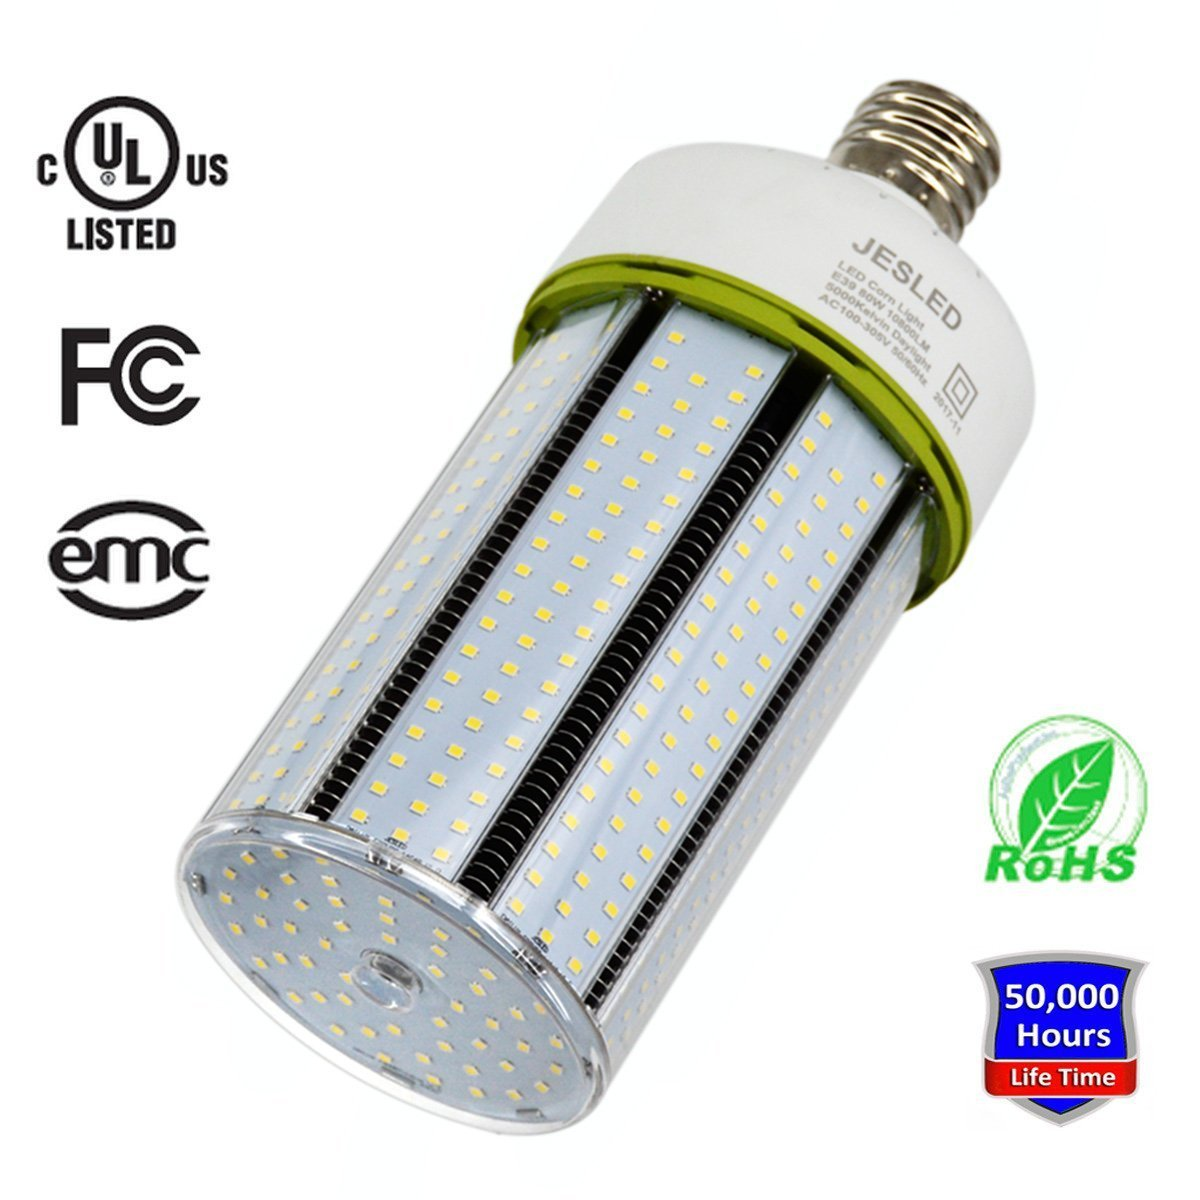 JESLED 150W LED Corn Light Bulb, Large Mogul E39 Base, 20250 Lumens, 5000K Daylight, Replacement for 1000W Equivalent Metal Halide Bulb, HID, CFL, HPS by JESLED (Image #1)